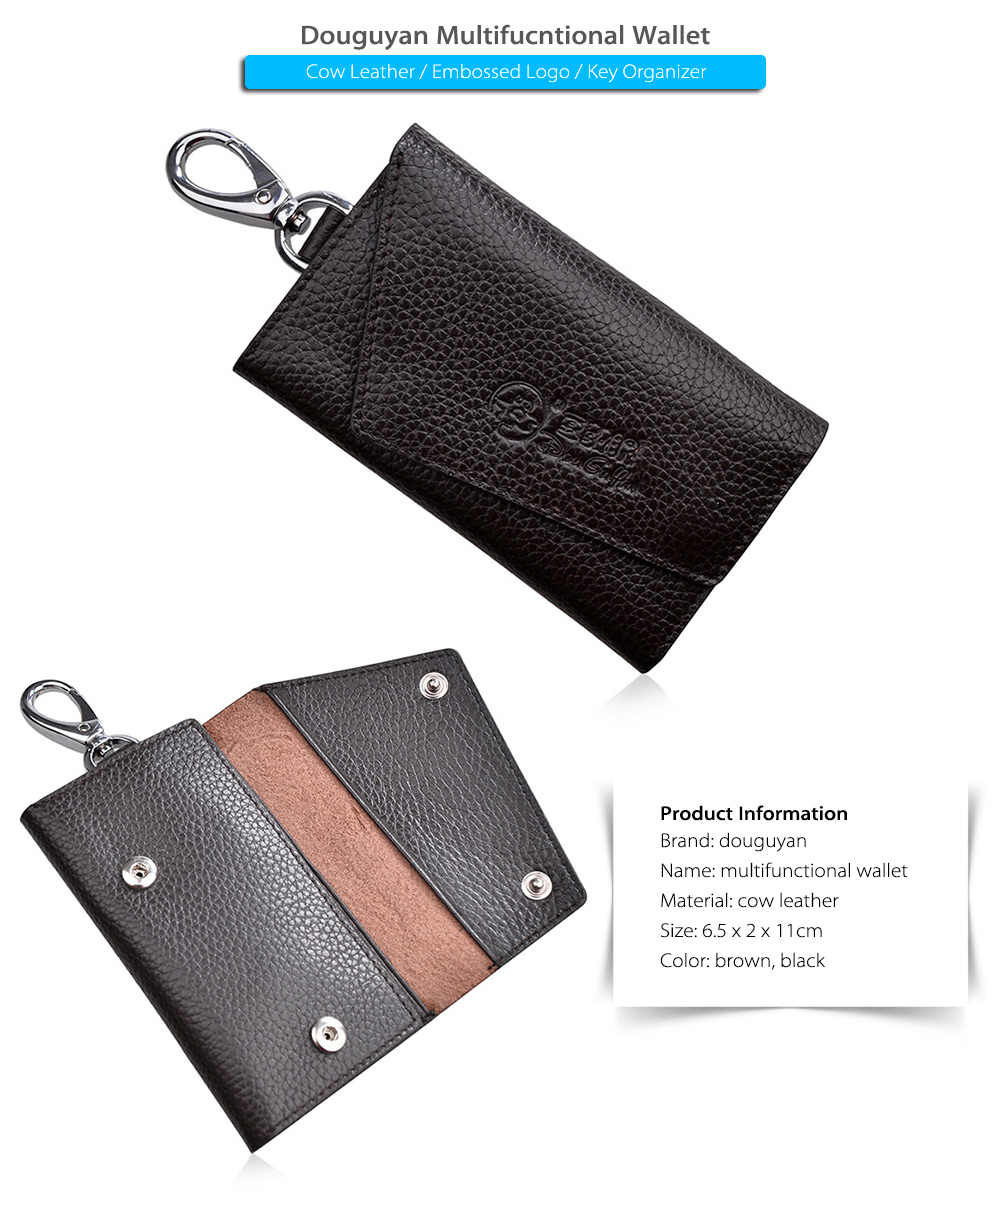 Douguyan Embossed Cow Leather Wallet Multifucntional Key Organizer